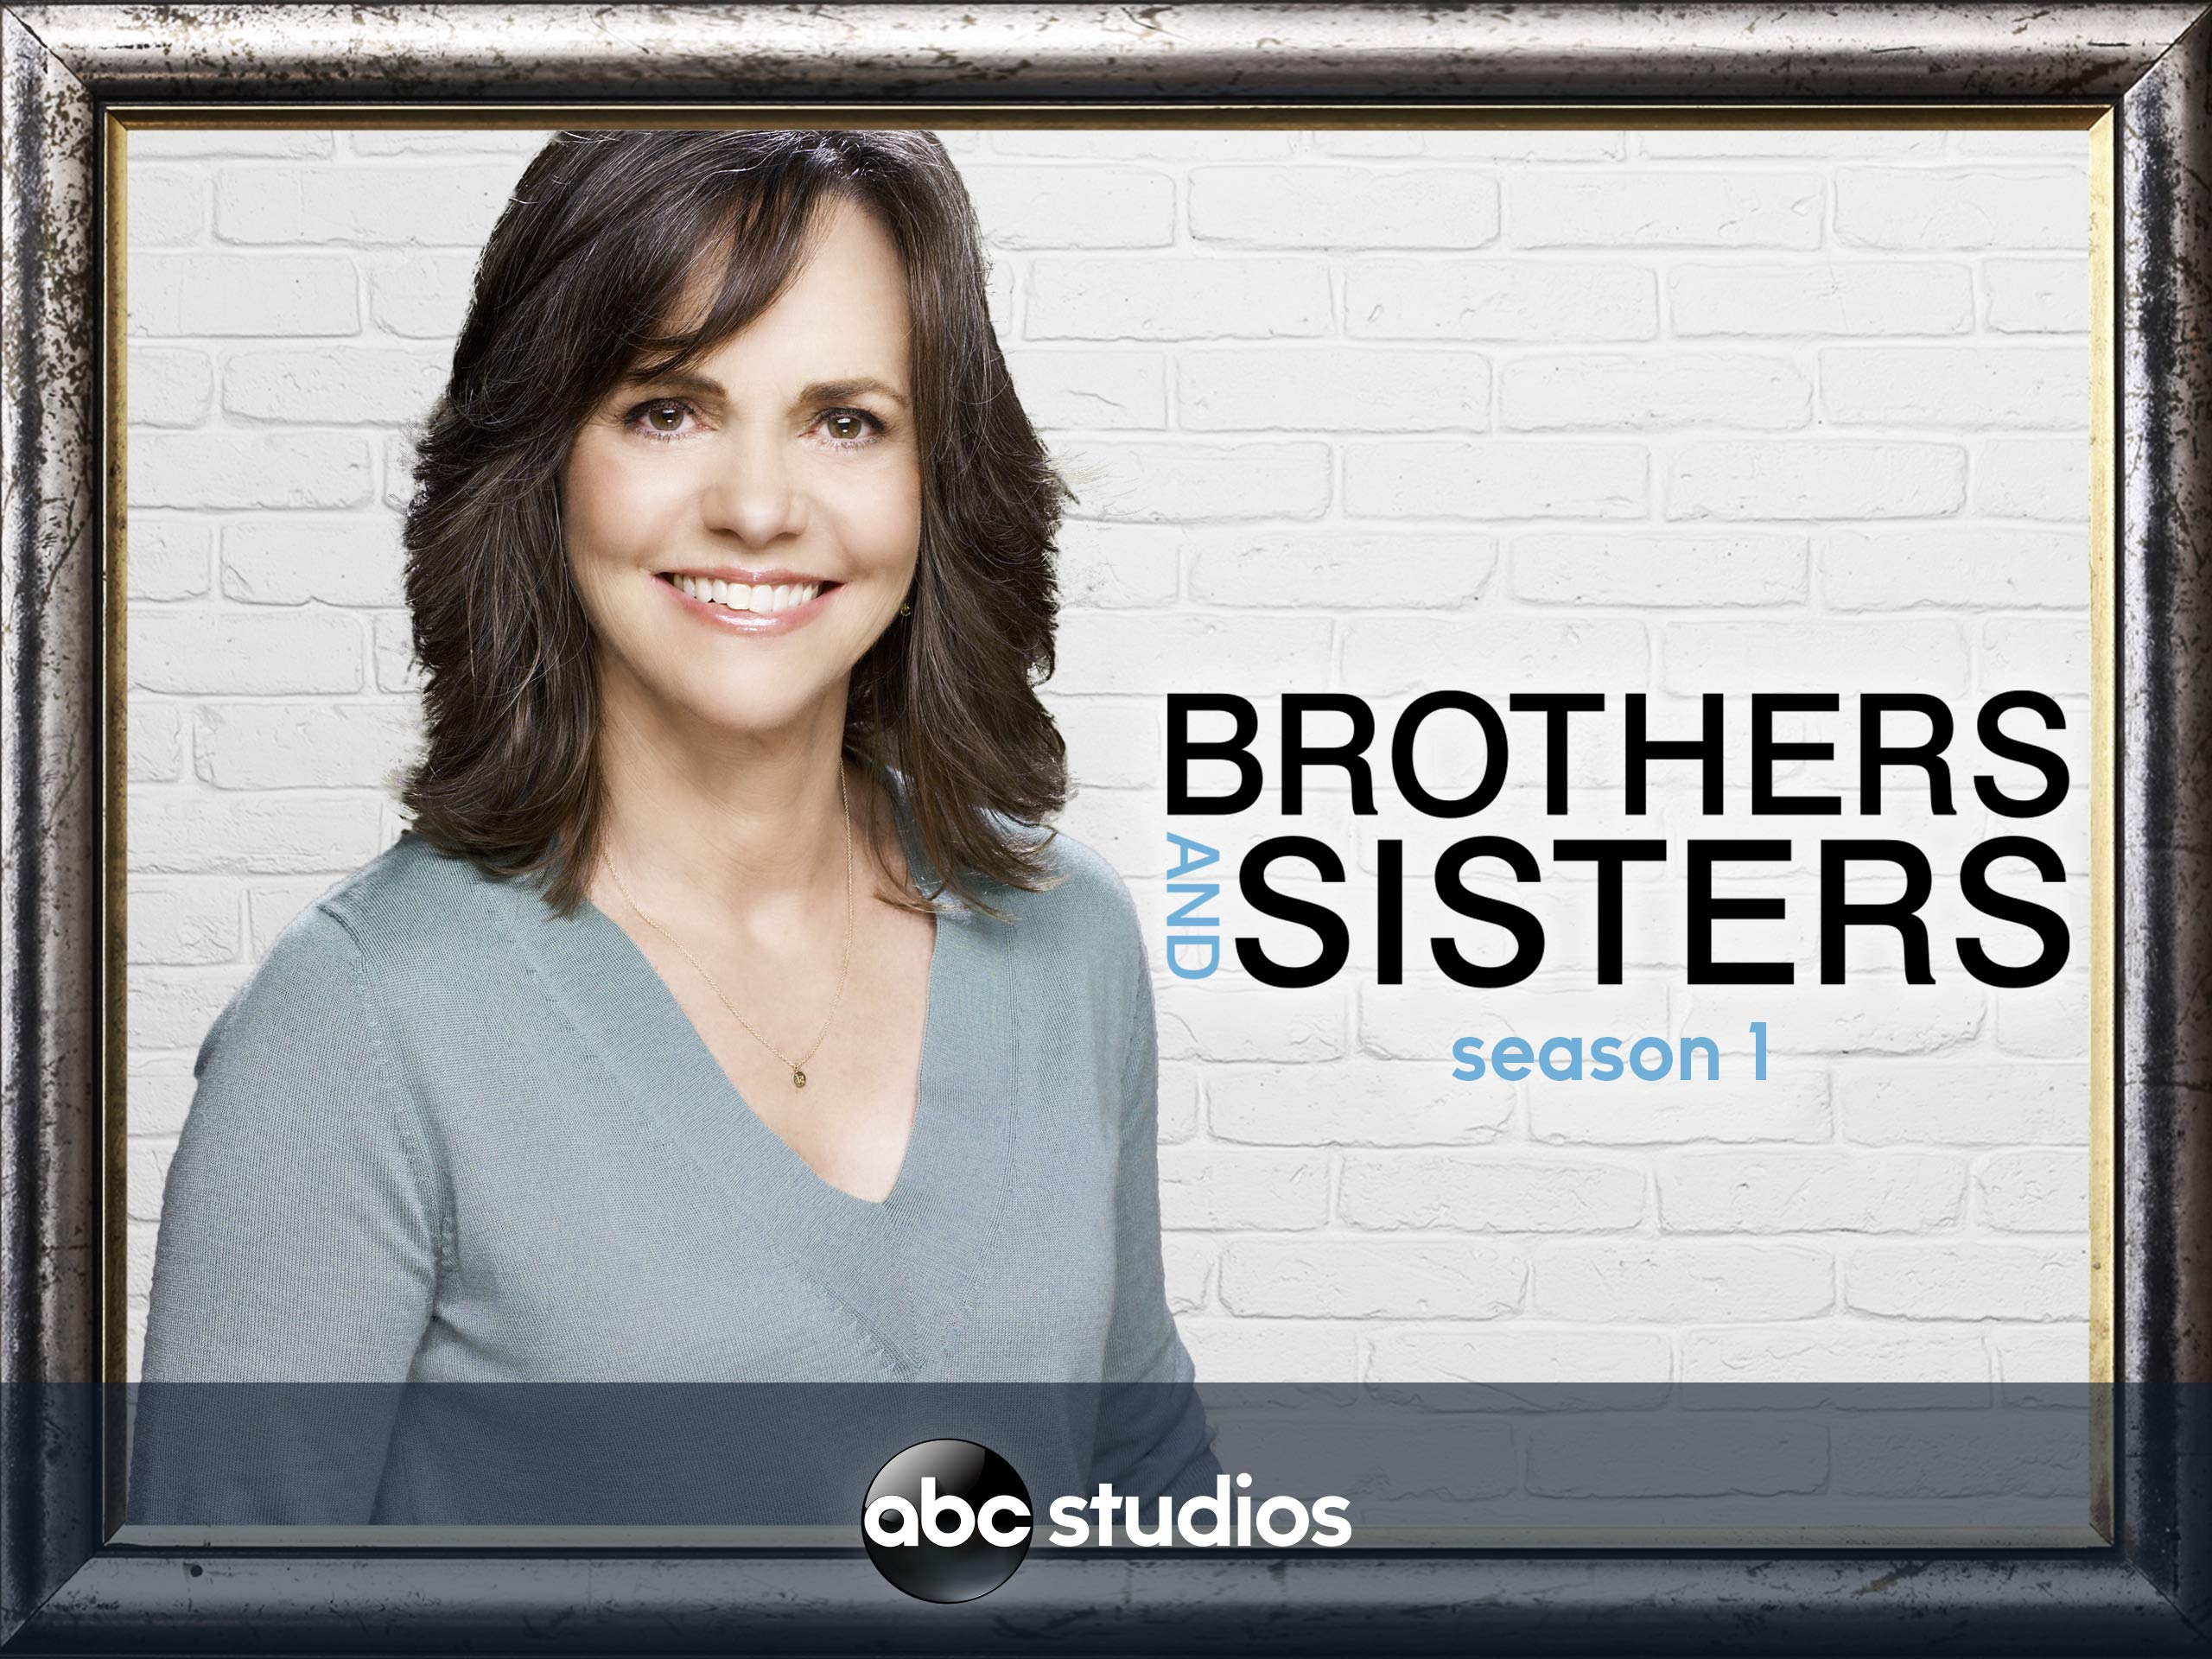 brothers and sisters cast dating